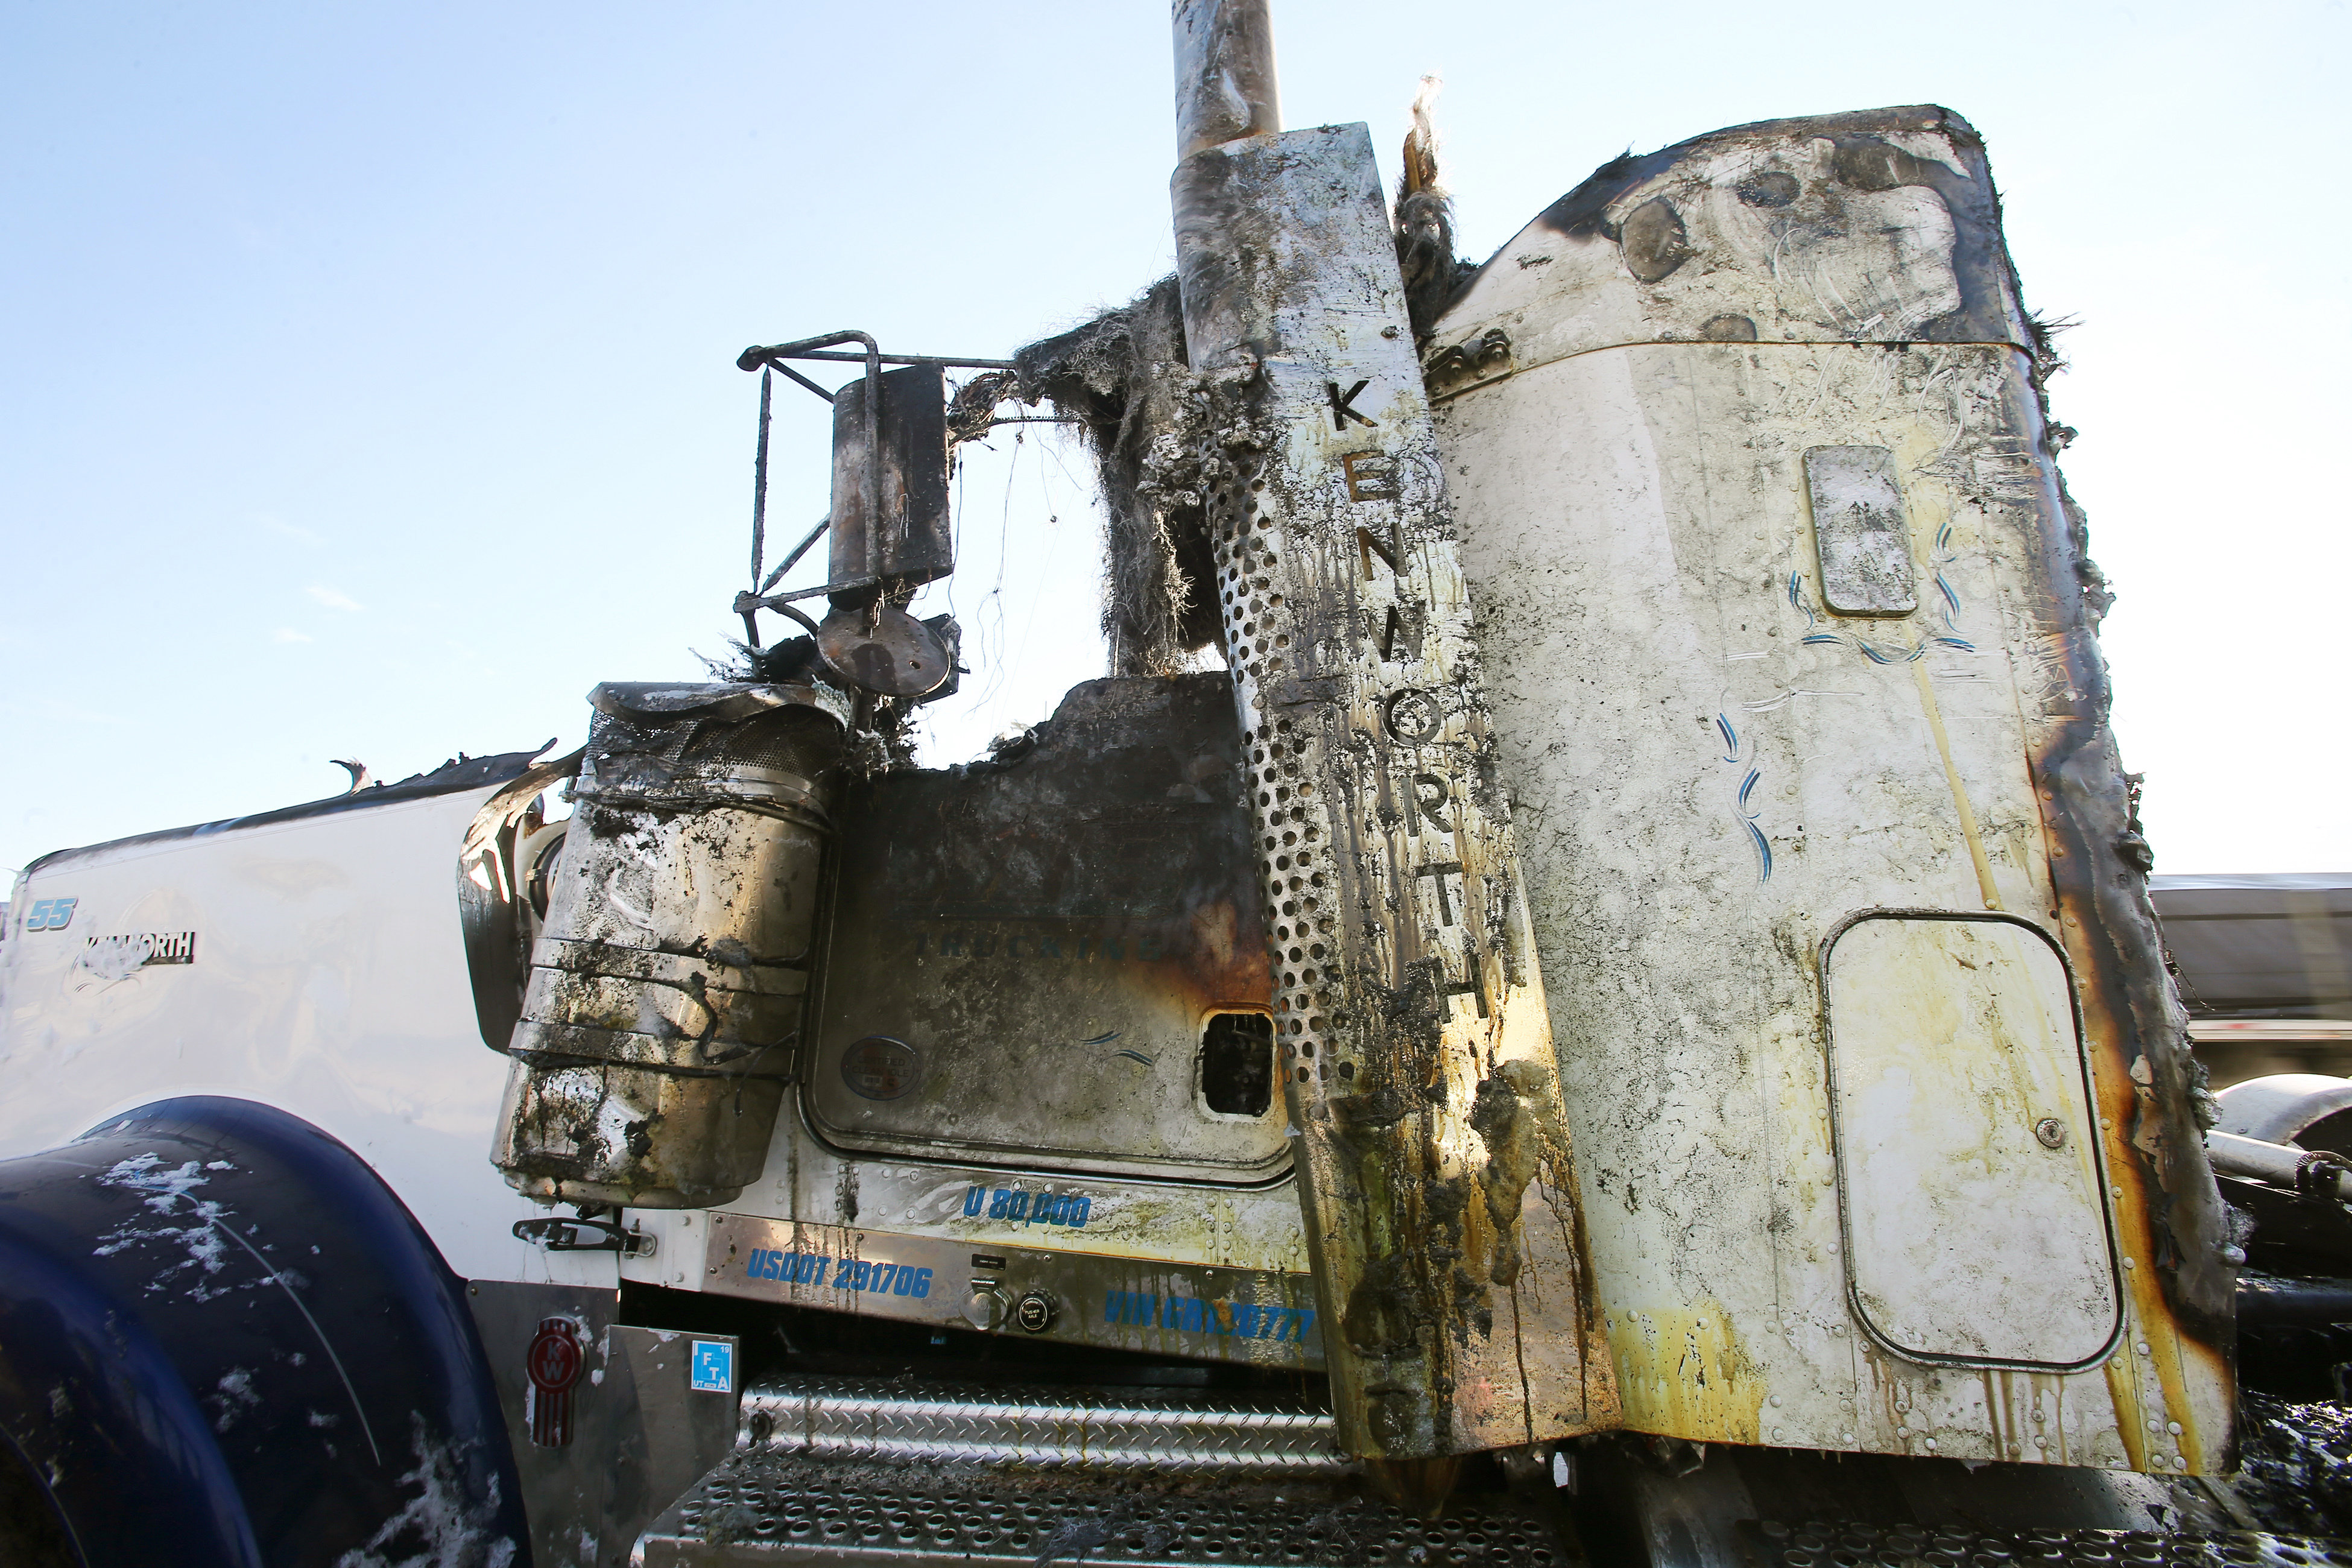 Tanker fire causes extensive damage to I-15 freeway in Salt